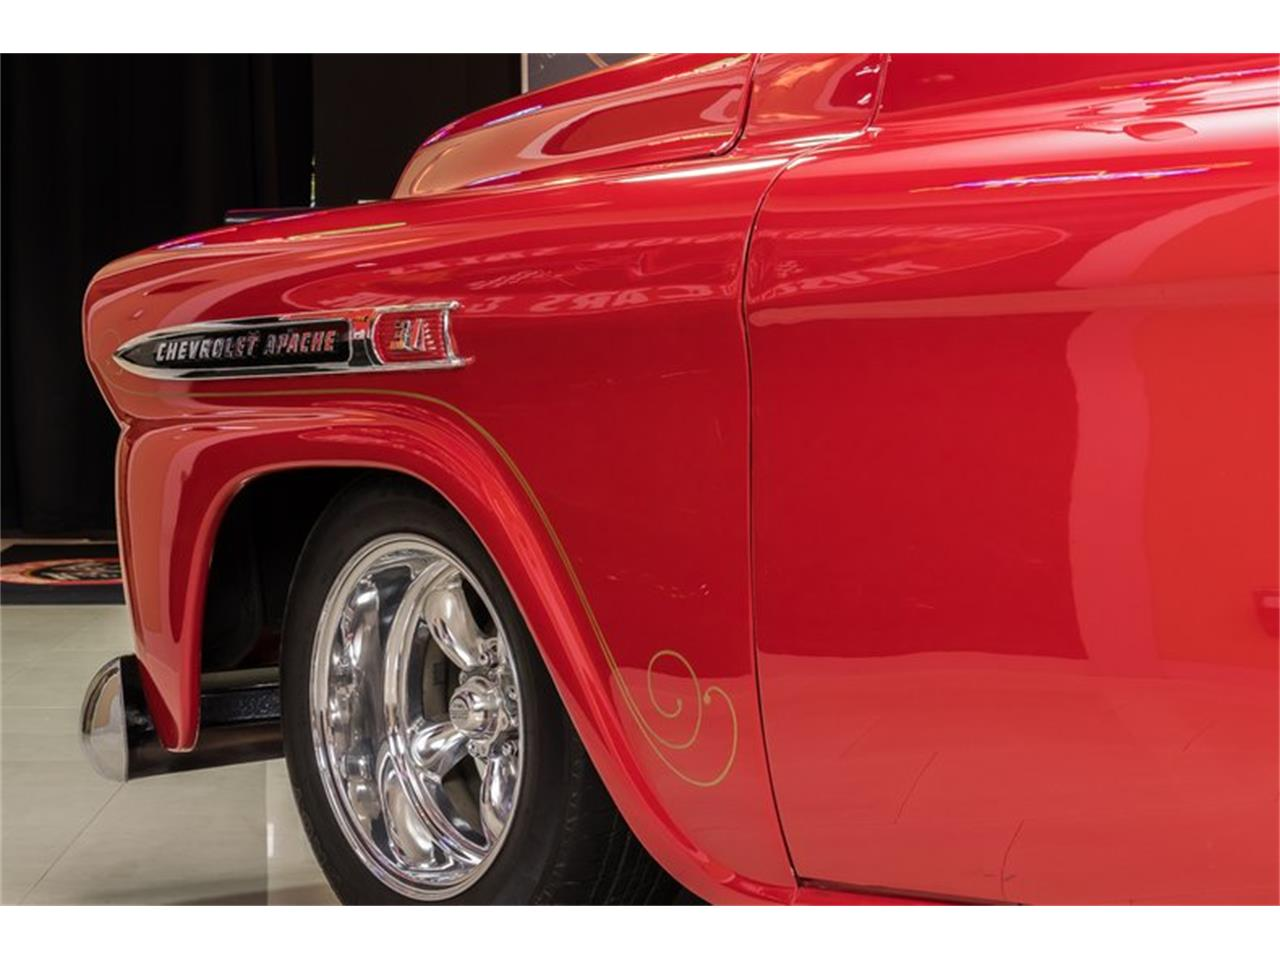 Large Picture of Classic 1959 Chevrolet Apache - $59,900.00 Offered by Vanguard Motor Sales - QKLK